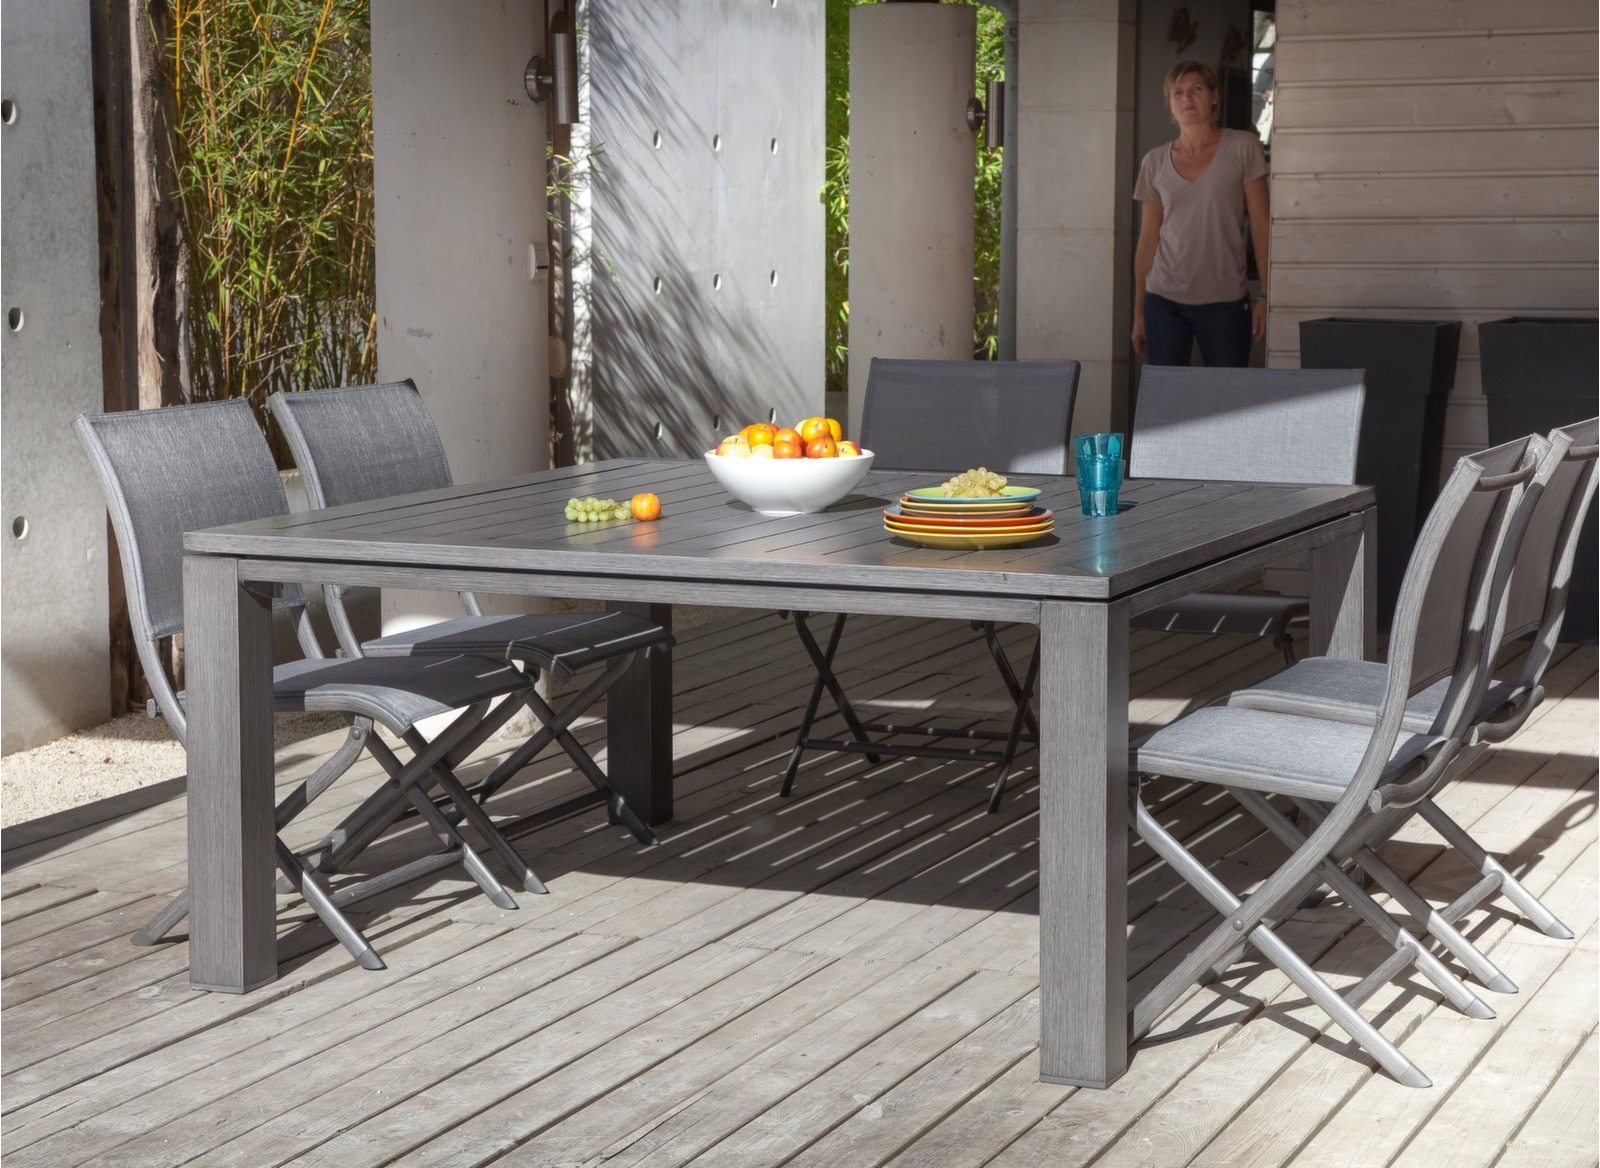 Table salon de jardin carr e 155cm gris latino oc o - Table de jardin carre ...